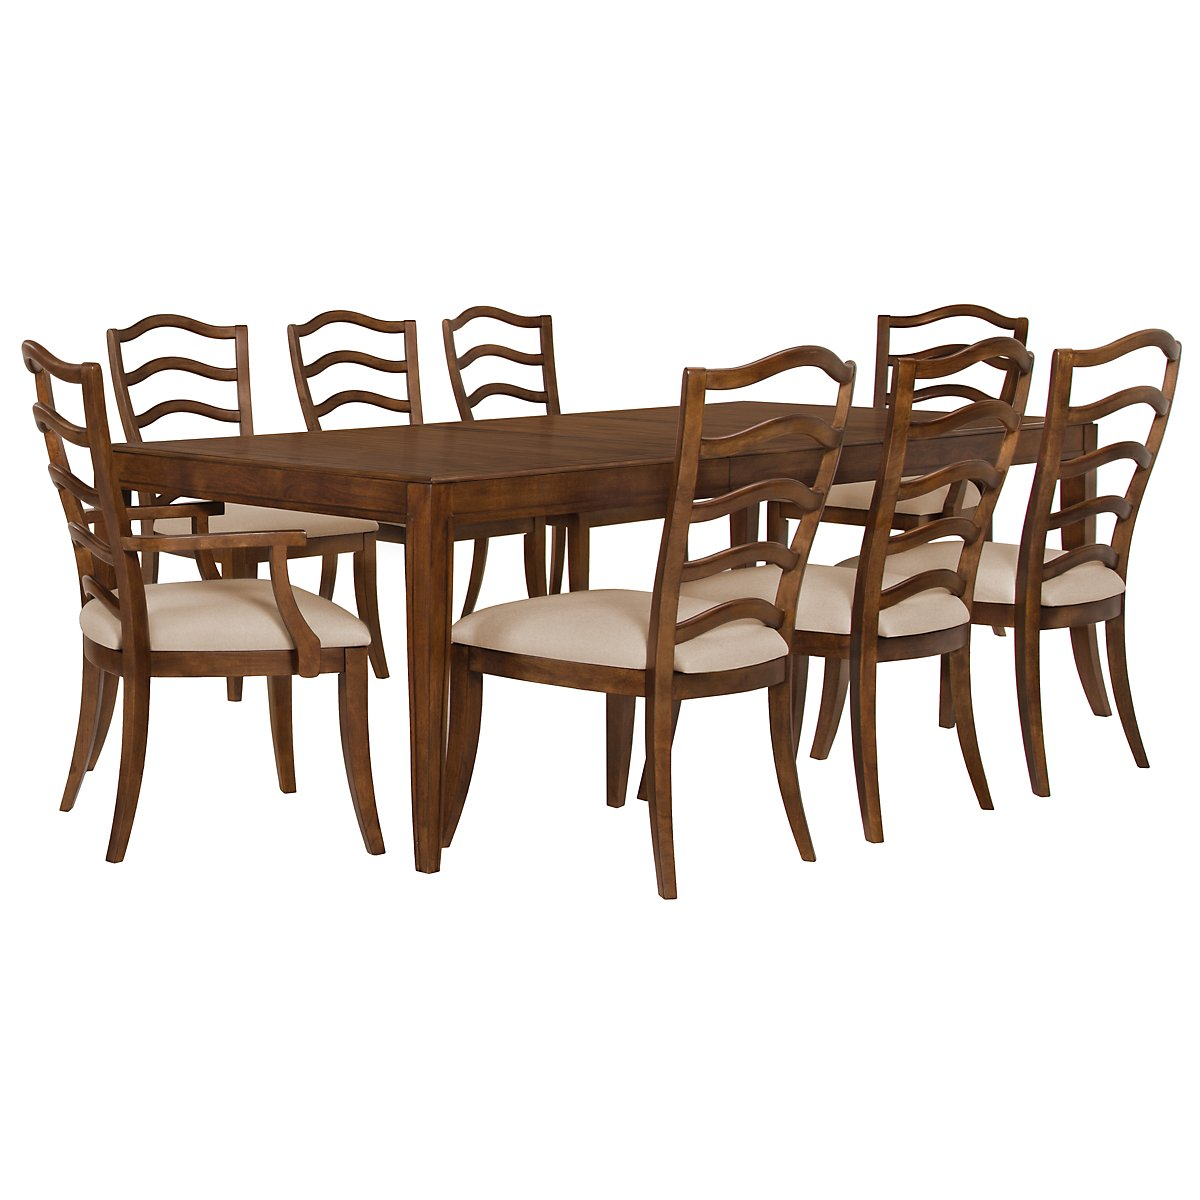 Savoy Mid Tone Rectangular Table & 4 Wood Chairs